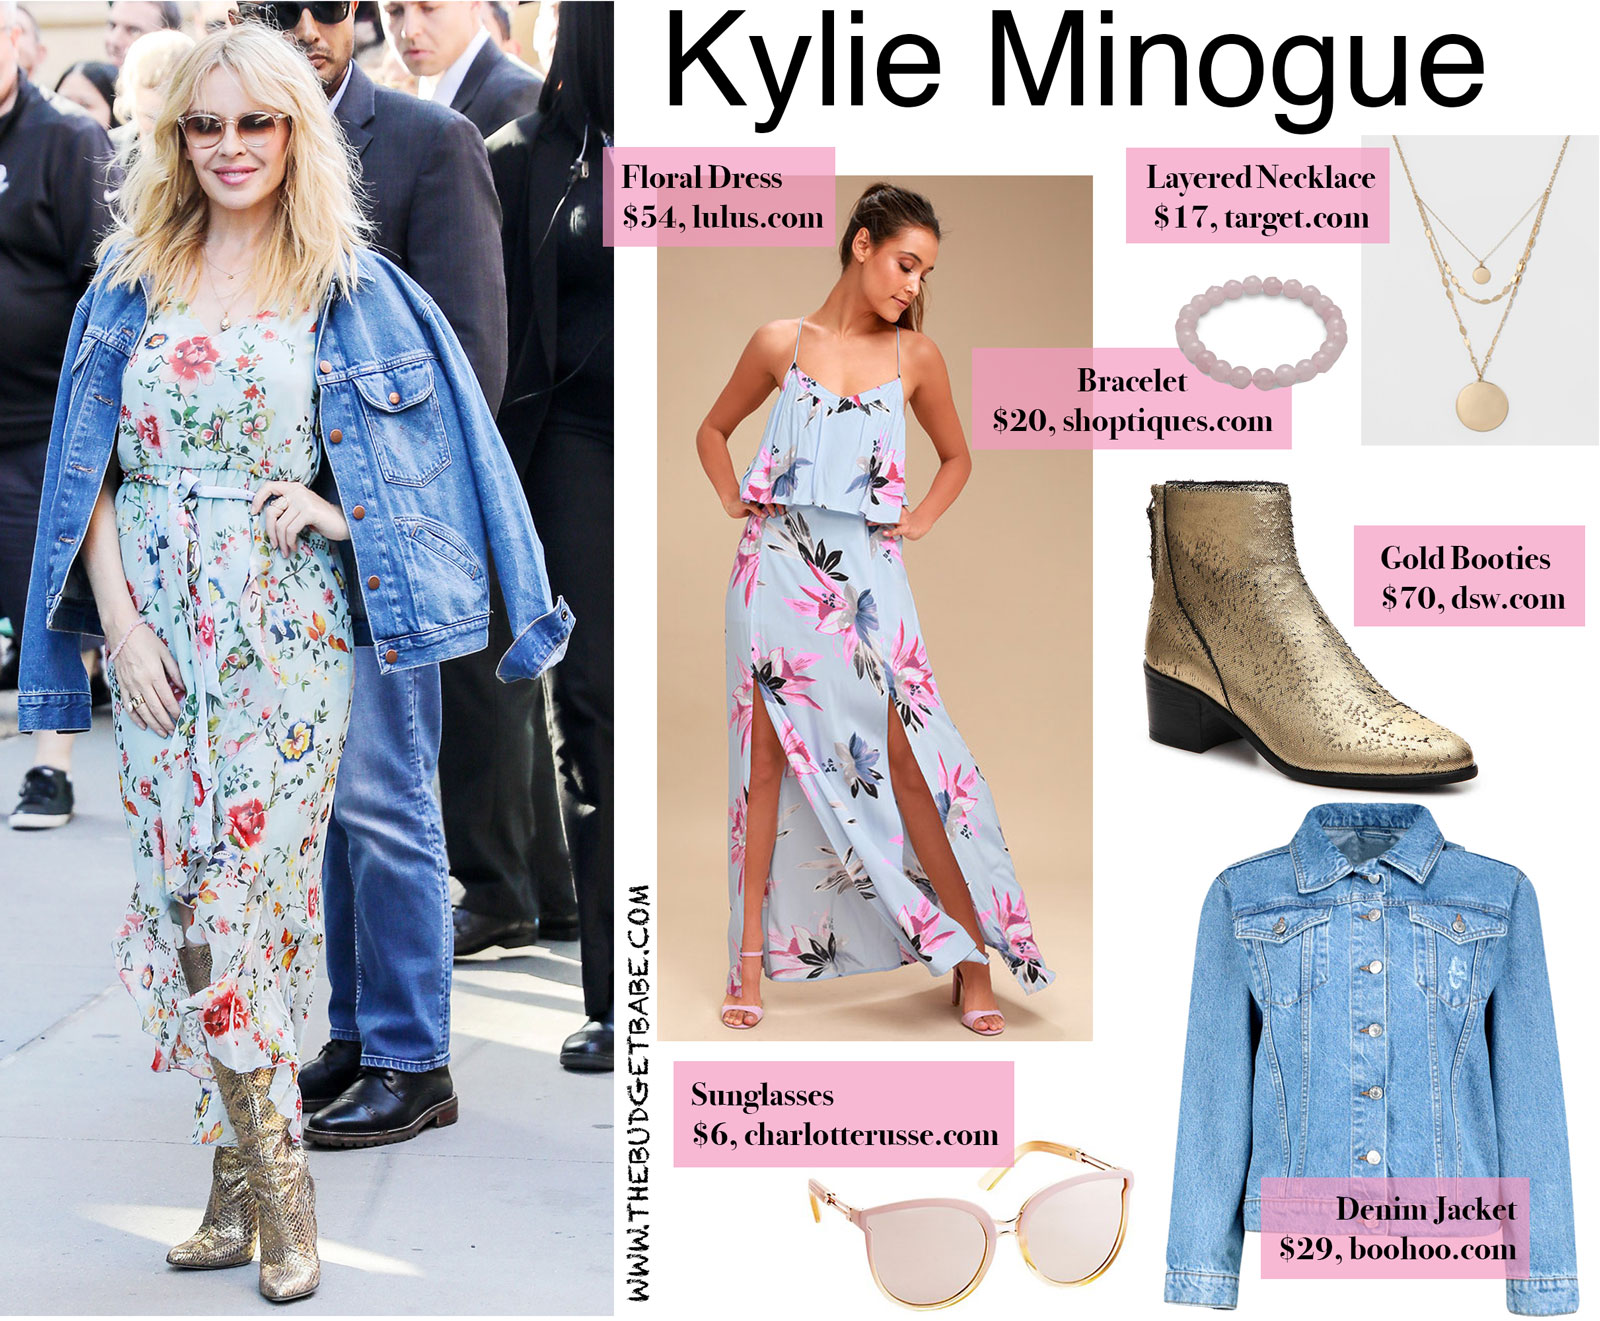 Kylie Minogue's Floral Dress and Gold Boots Look for Less